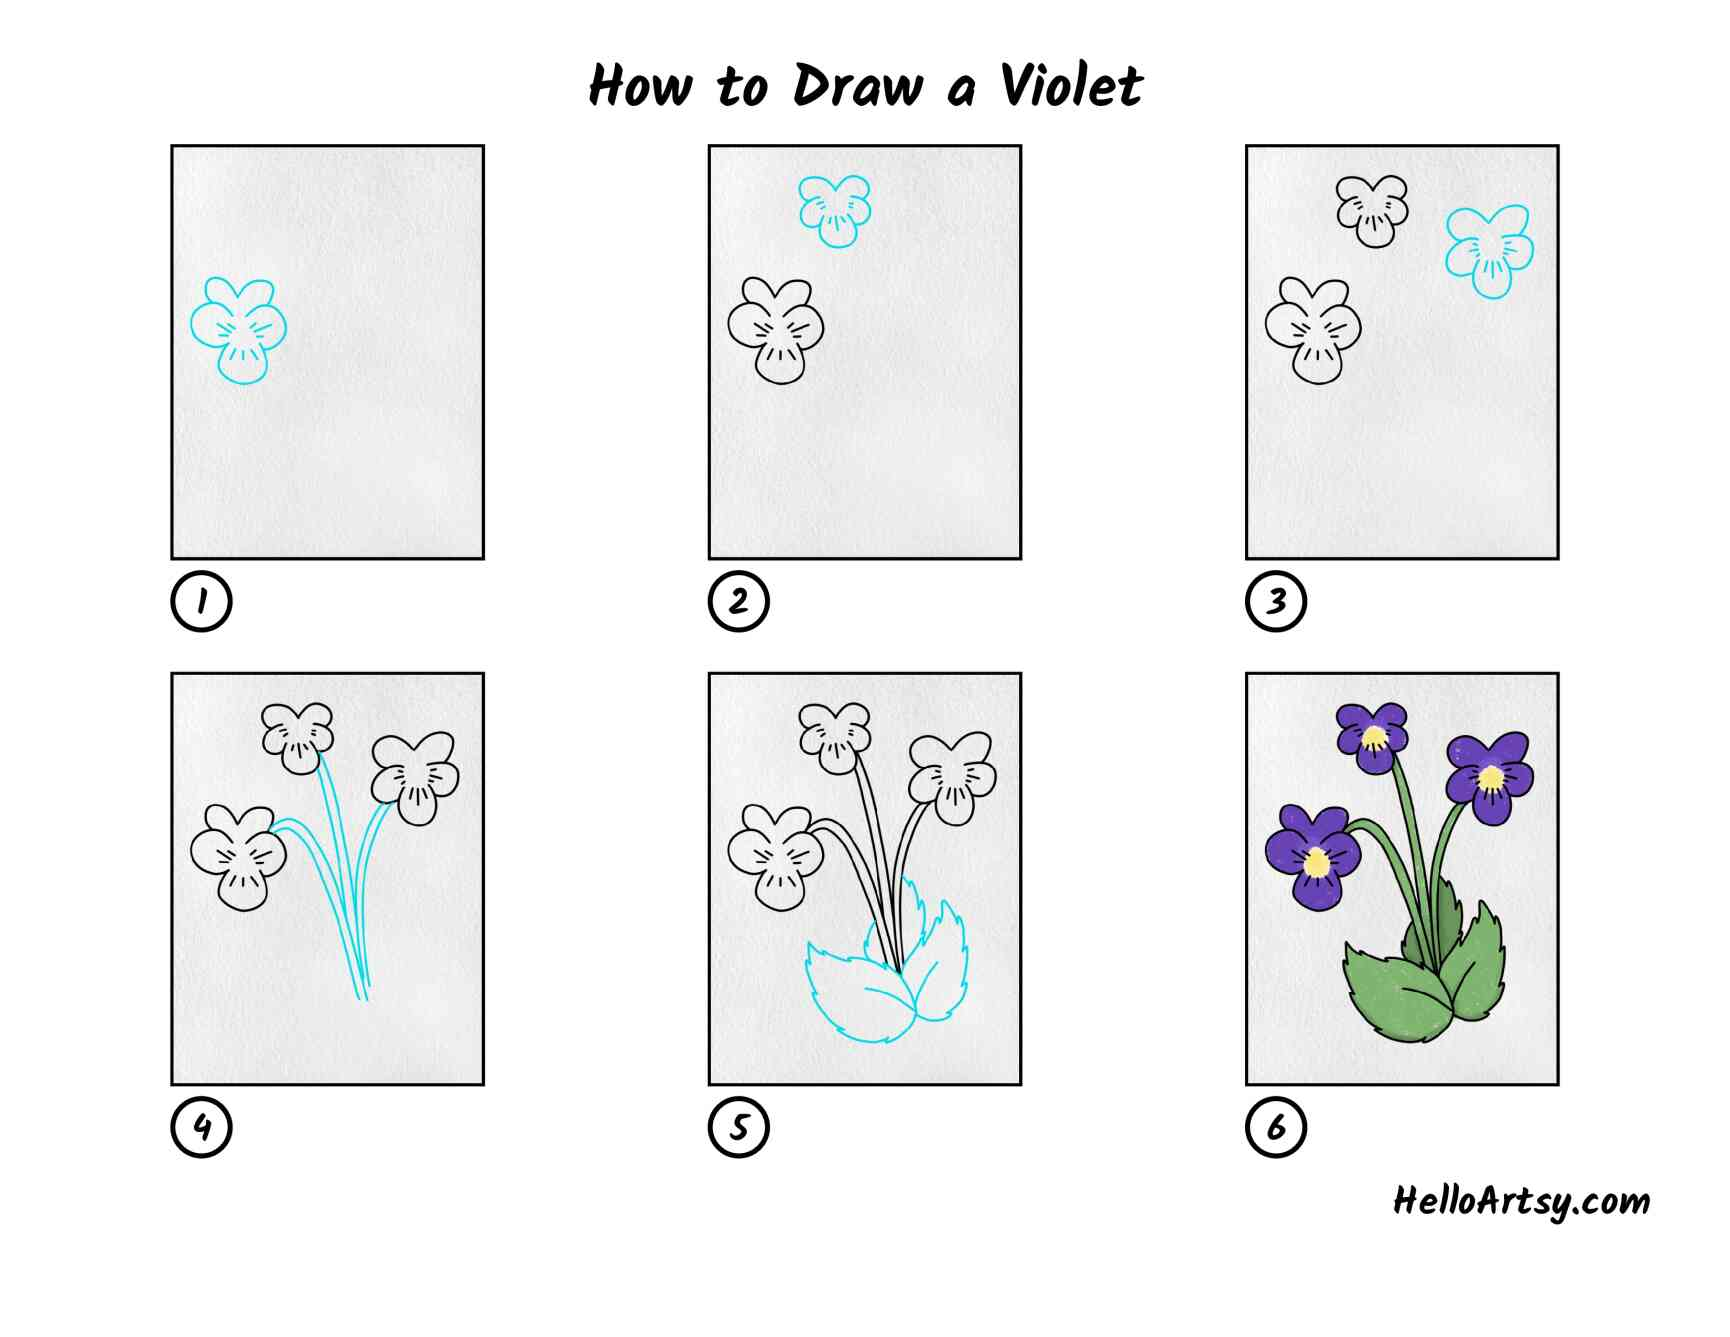 How To Draw A Violet: All Steps